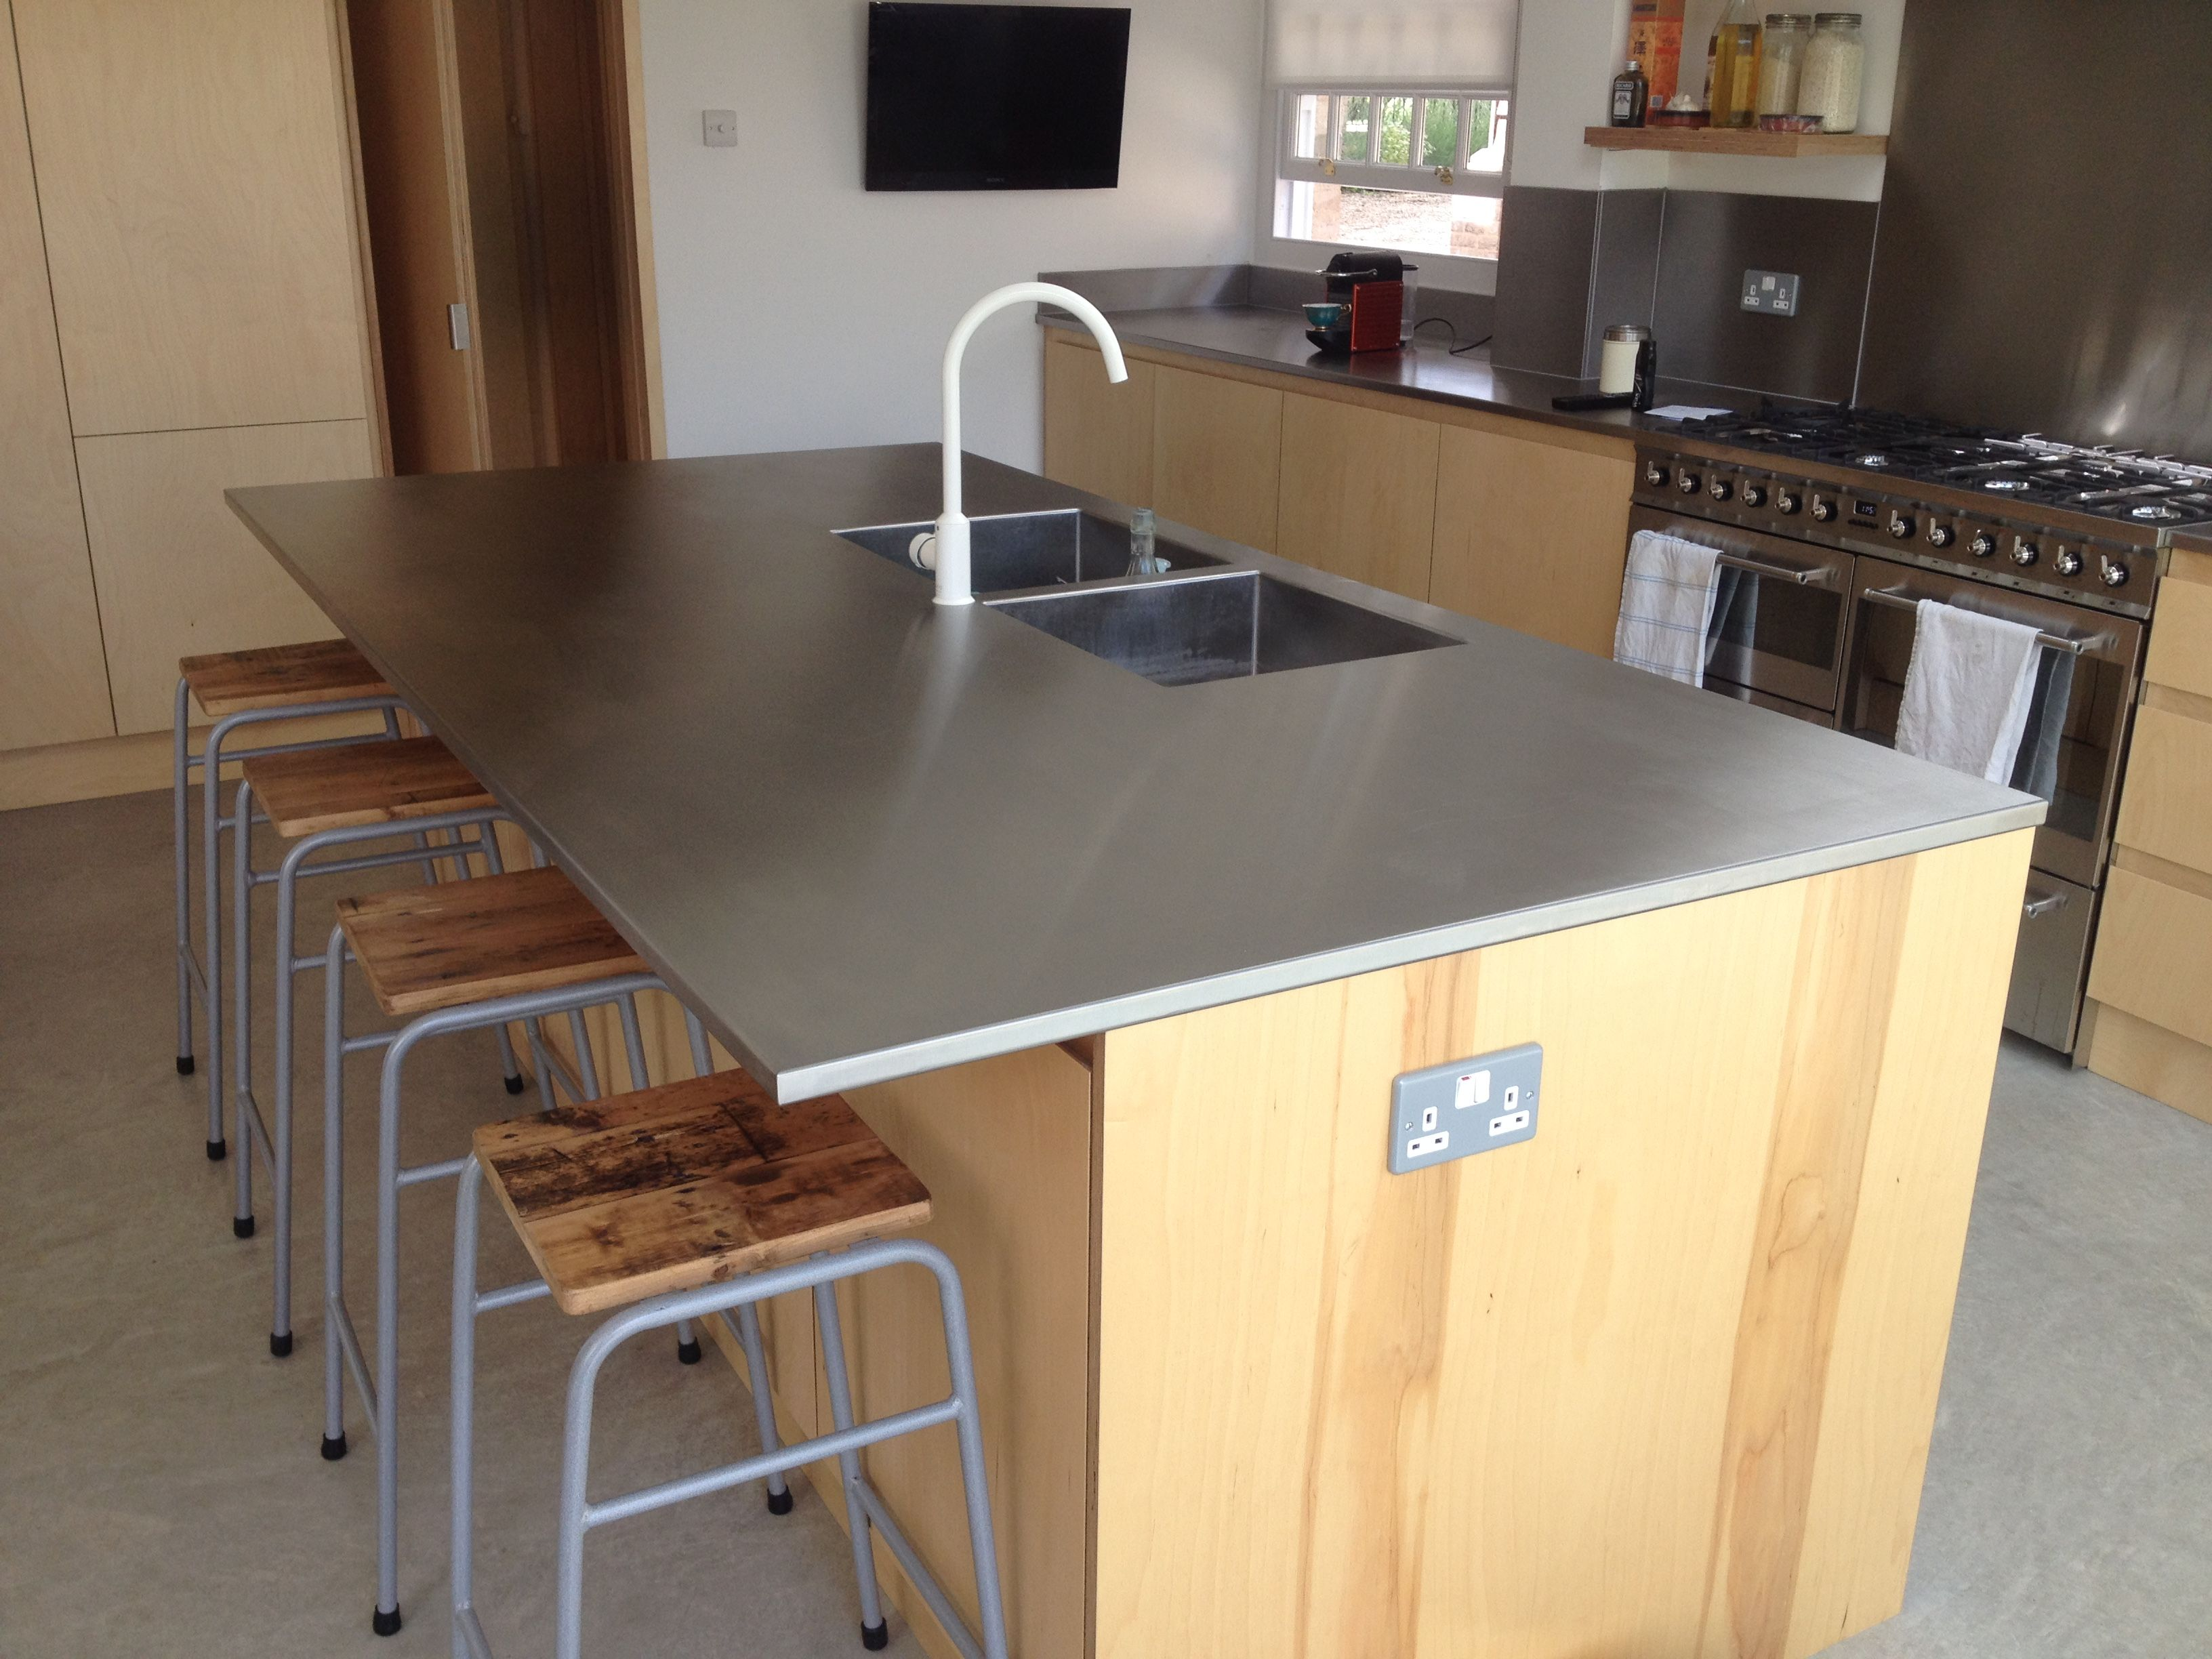 A Great Looking Stainless Steel Island Worktop Here With